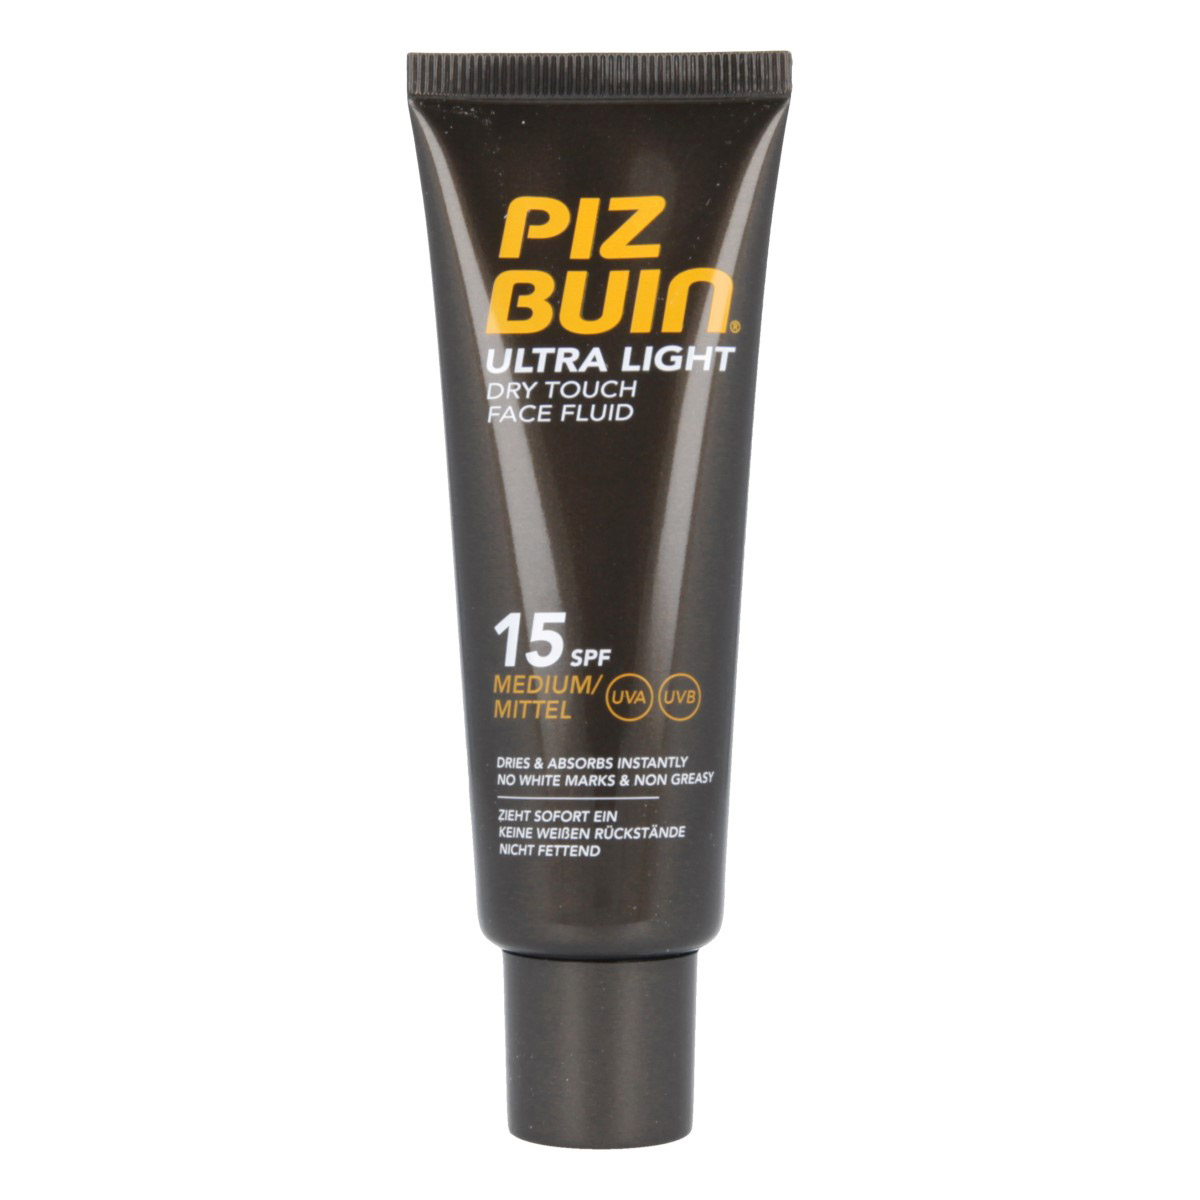 Piz Buin Ultra Light Dry Touch Face Fluid SPF 15 50 ml